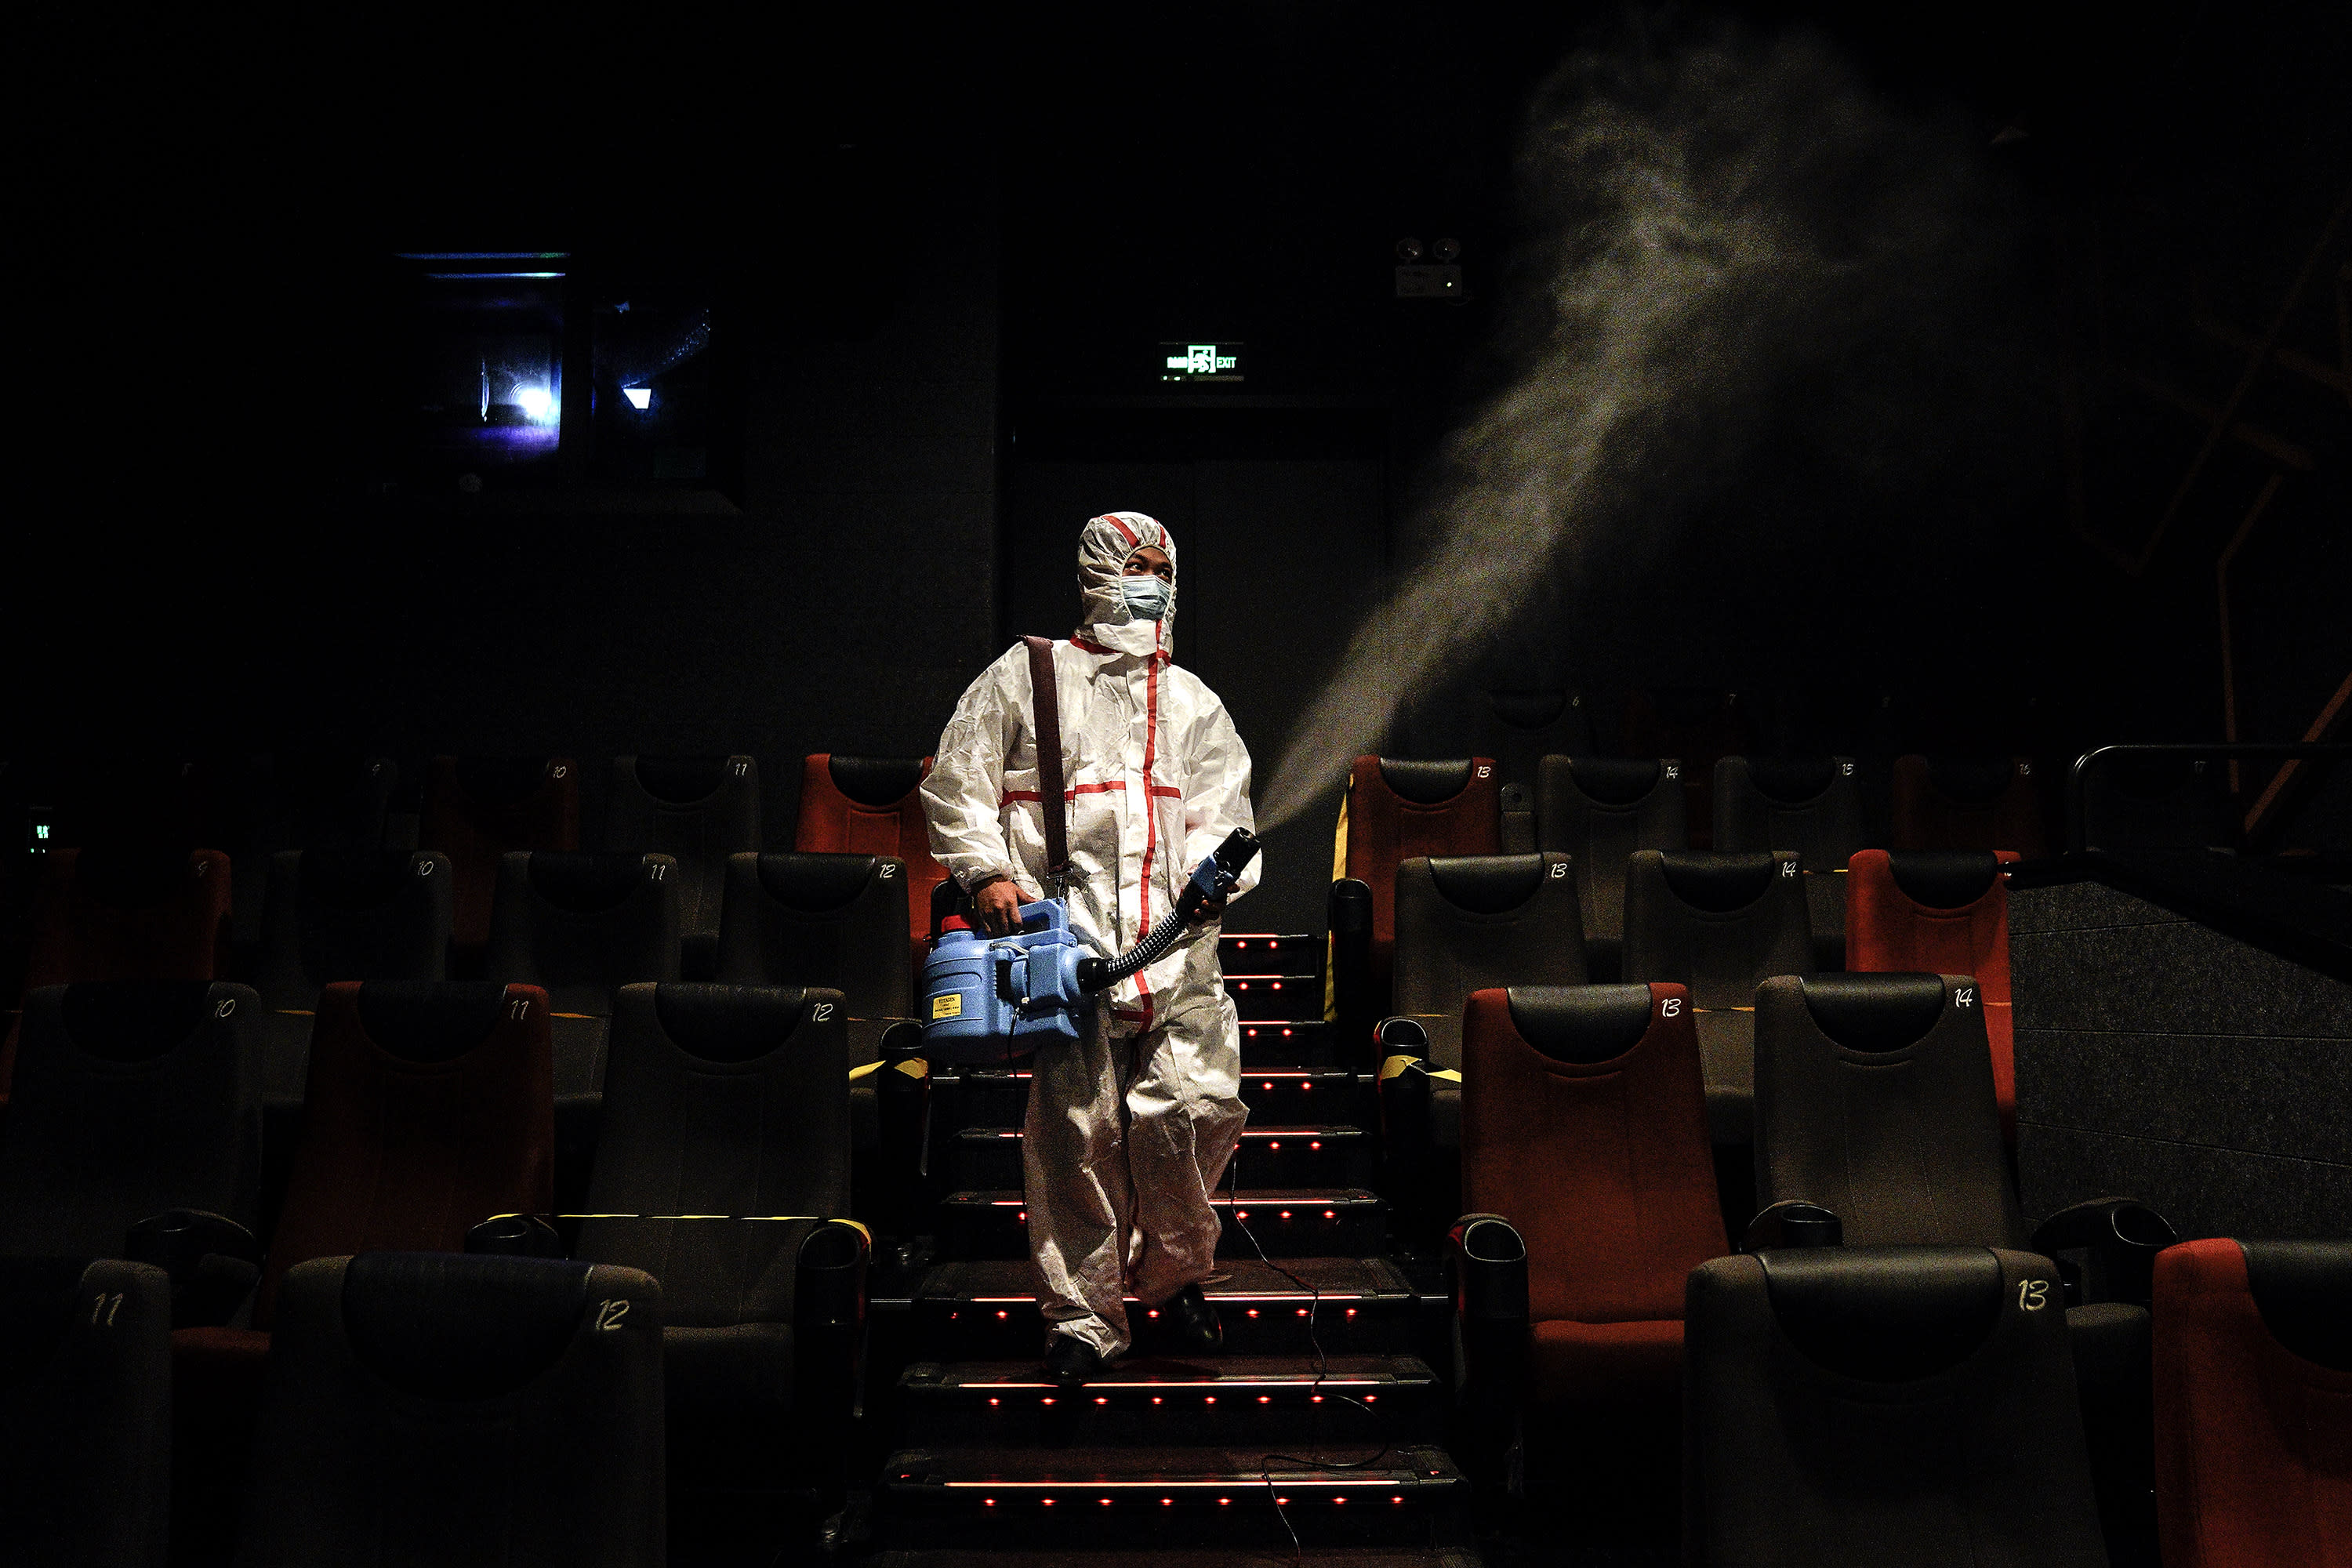 WUHAN, CHINA - JULY 20: (CHINA OUT)The employees wear the protective clothing disinfection in a cinema at Wuhan on July 20, 2020 in Wuhan ,Hubei Province,China.Taking various measures against COVID-19, cinemas in the city reopened in an orderly manner on Monday. The China Film Administration, in a circular last week, allowed cinemas in low-risk areas to resume operation with effective epidemic prevention measures in place. (Photo by Getty Images)